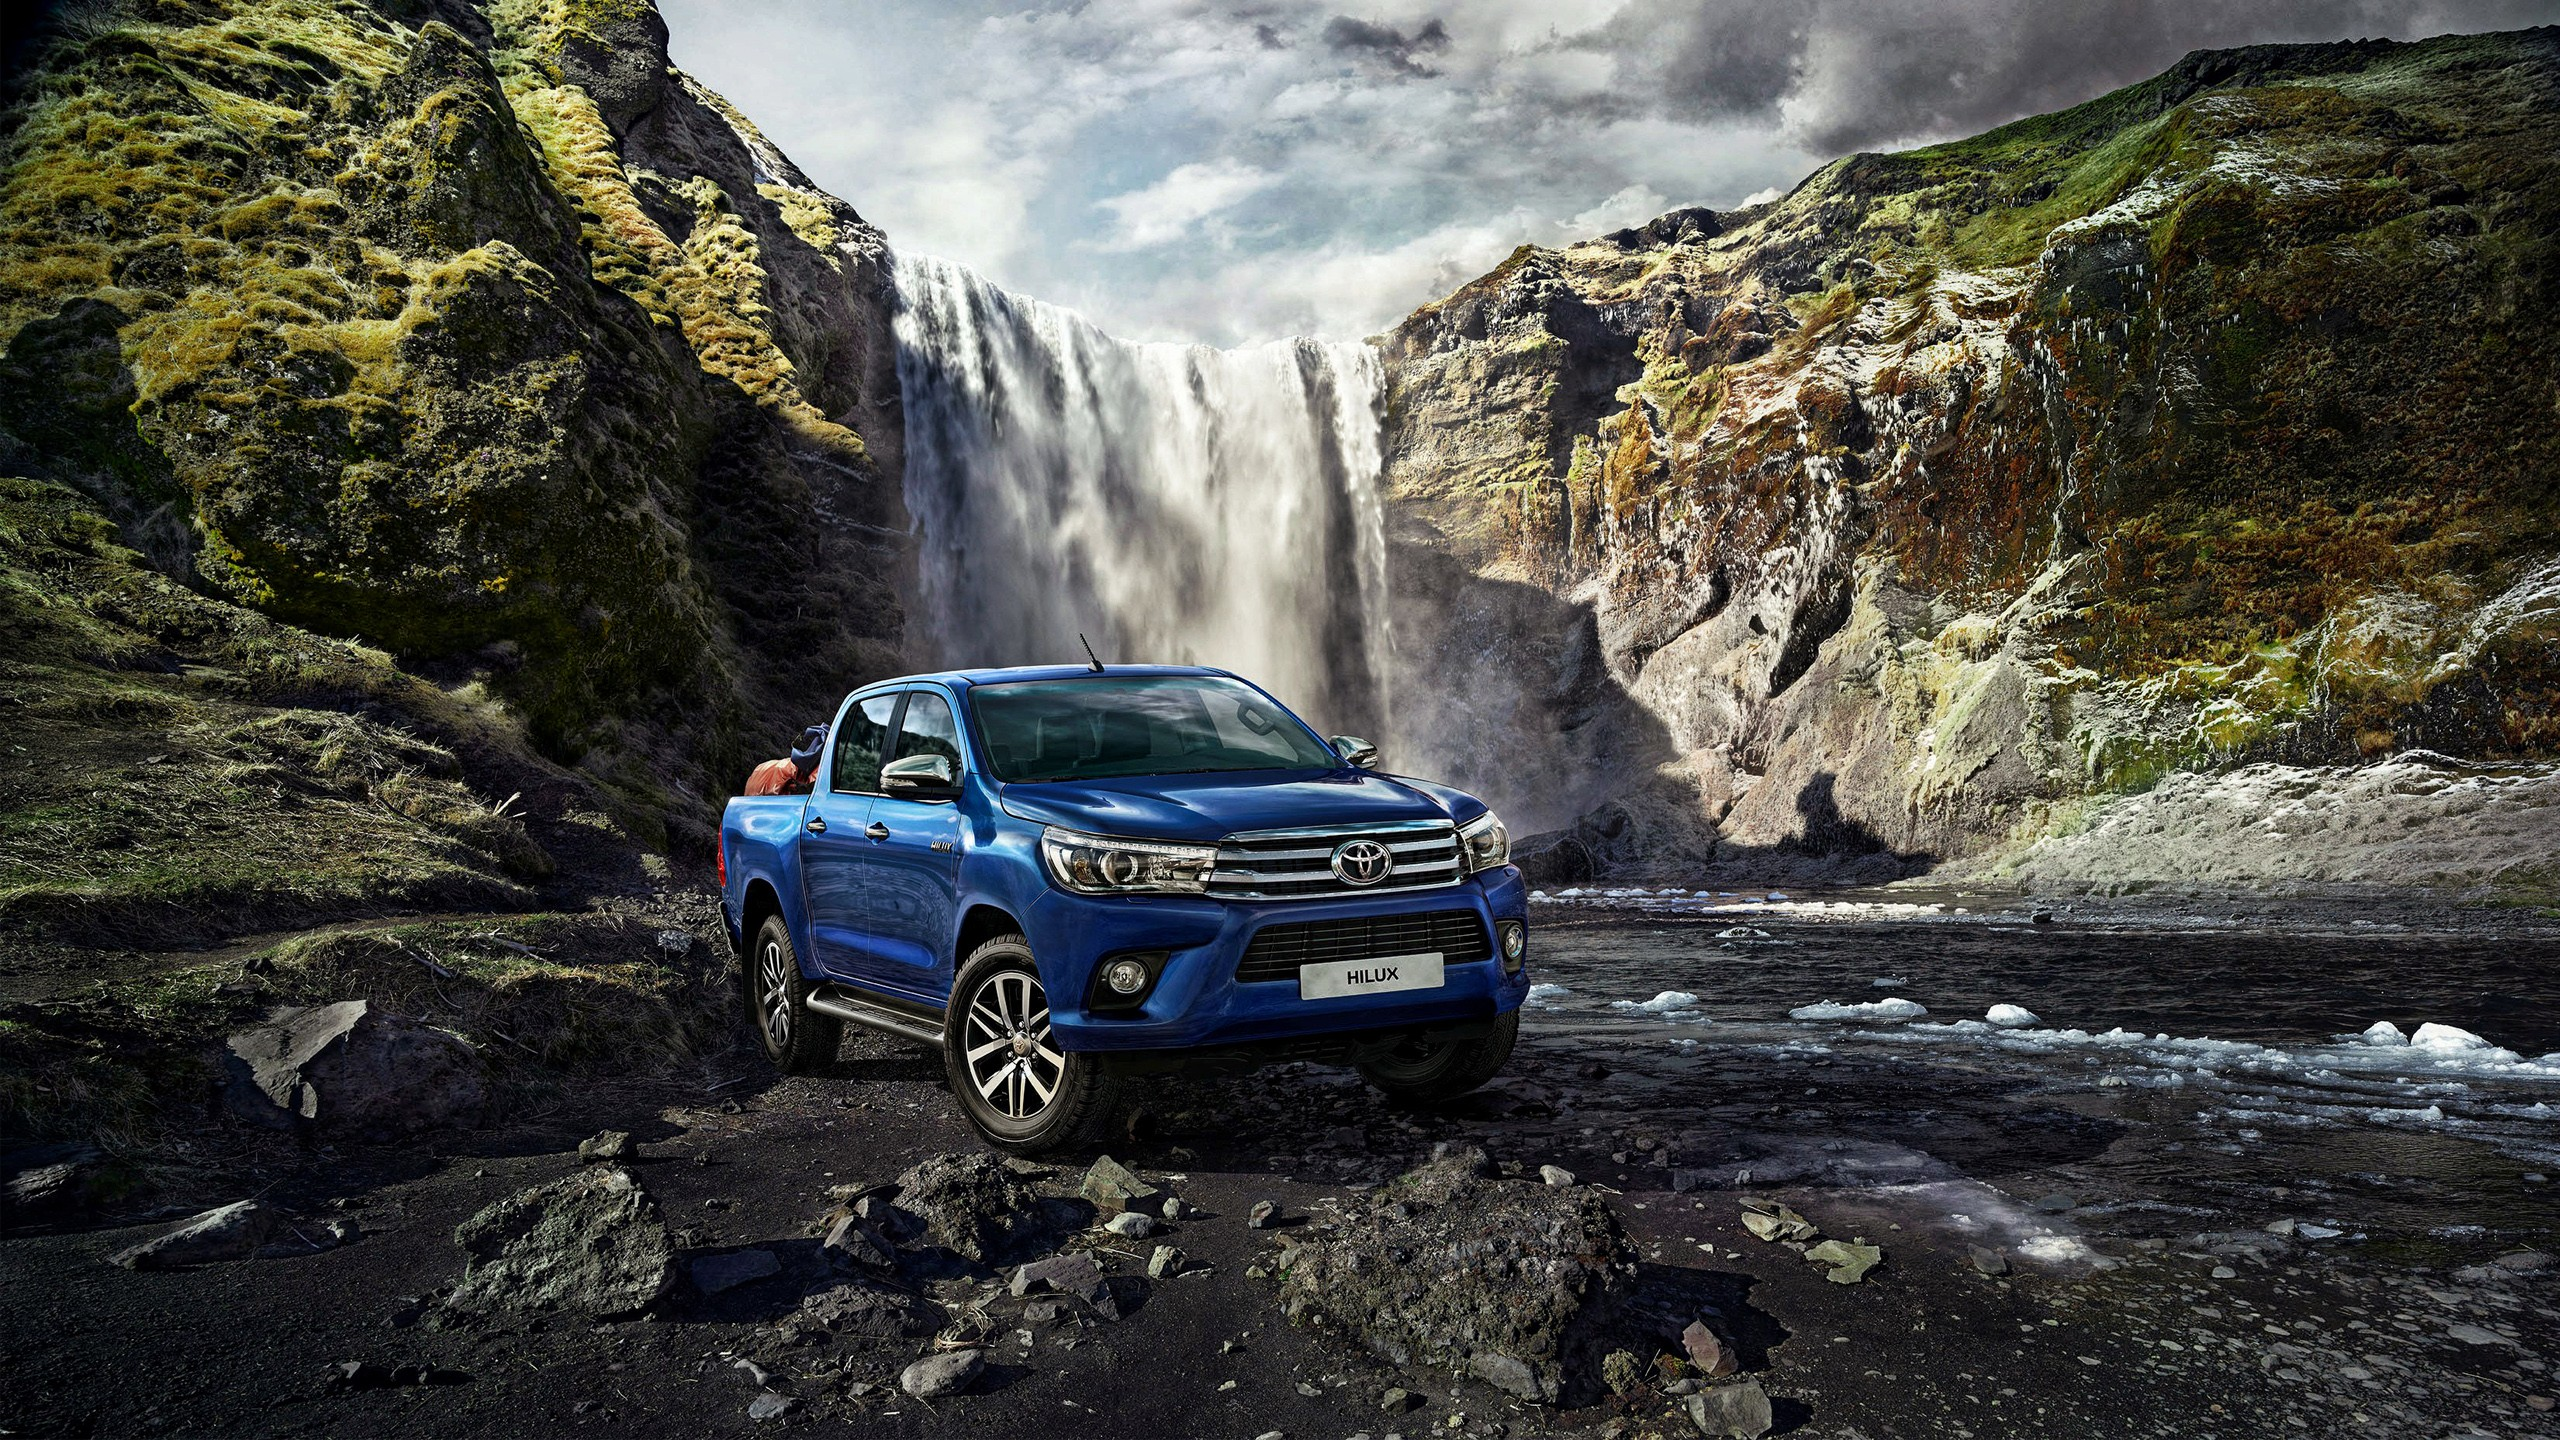 2015 Toyota Hilux Wallpaper | HD Car Wallpapers | ID #5627